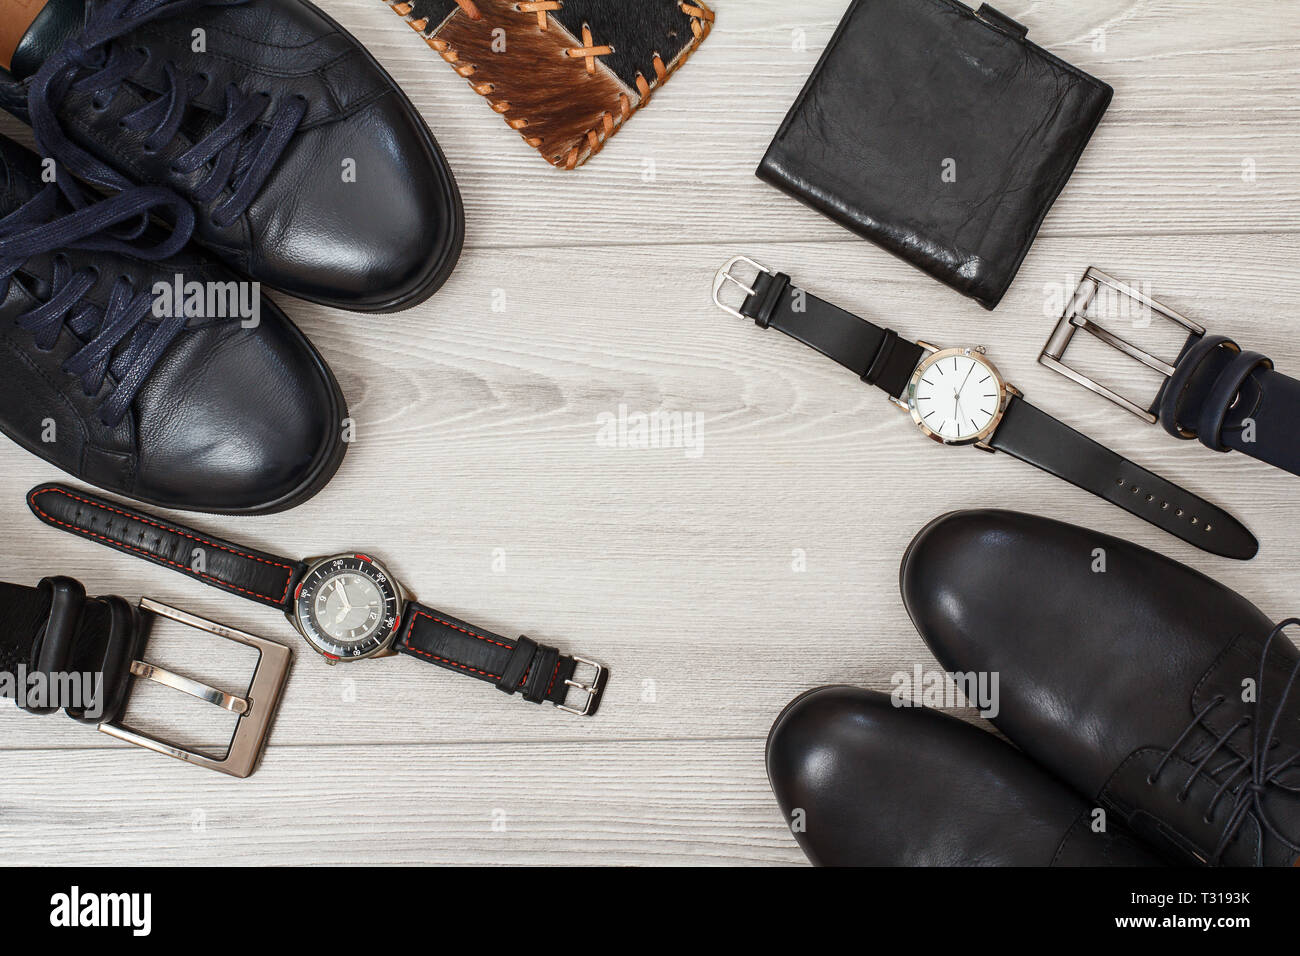 Two pairs of black leather men's shoes, two belts for men, wallets and wristwatches on gray wooden background. Men's accessories. Top view. - Stock Image